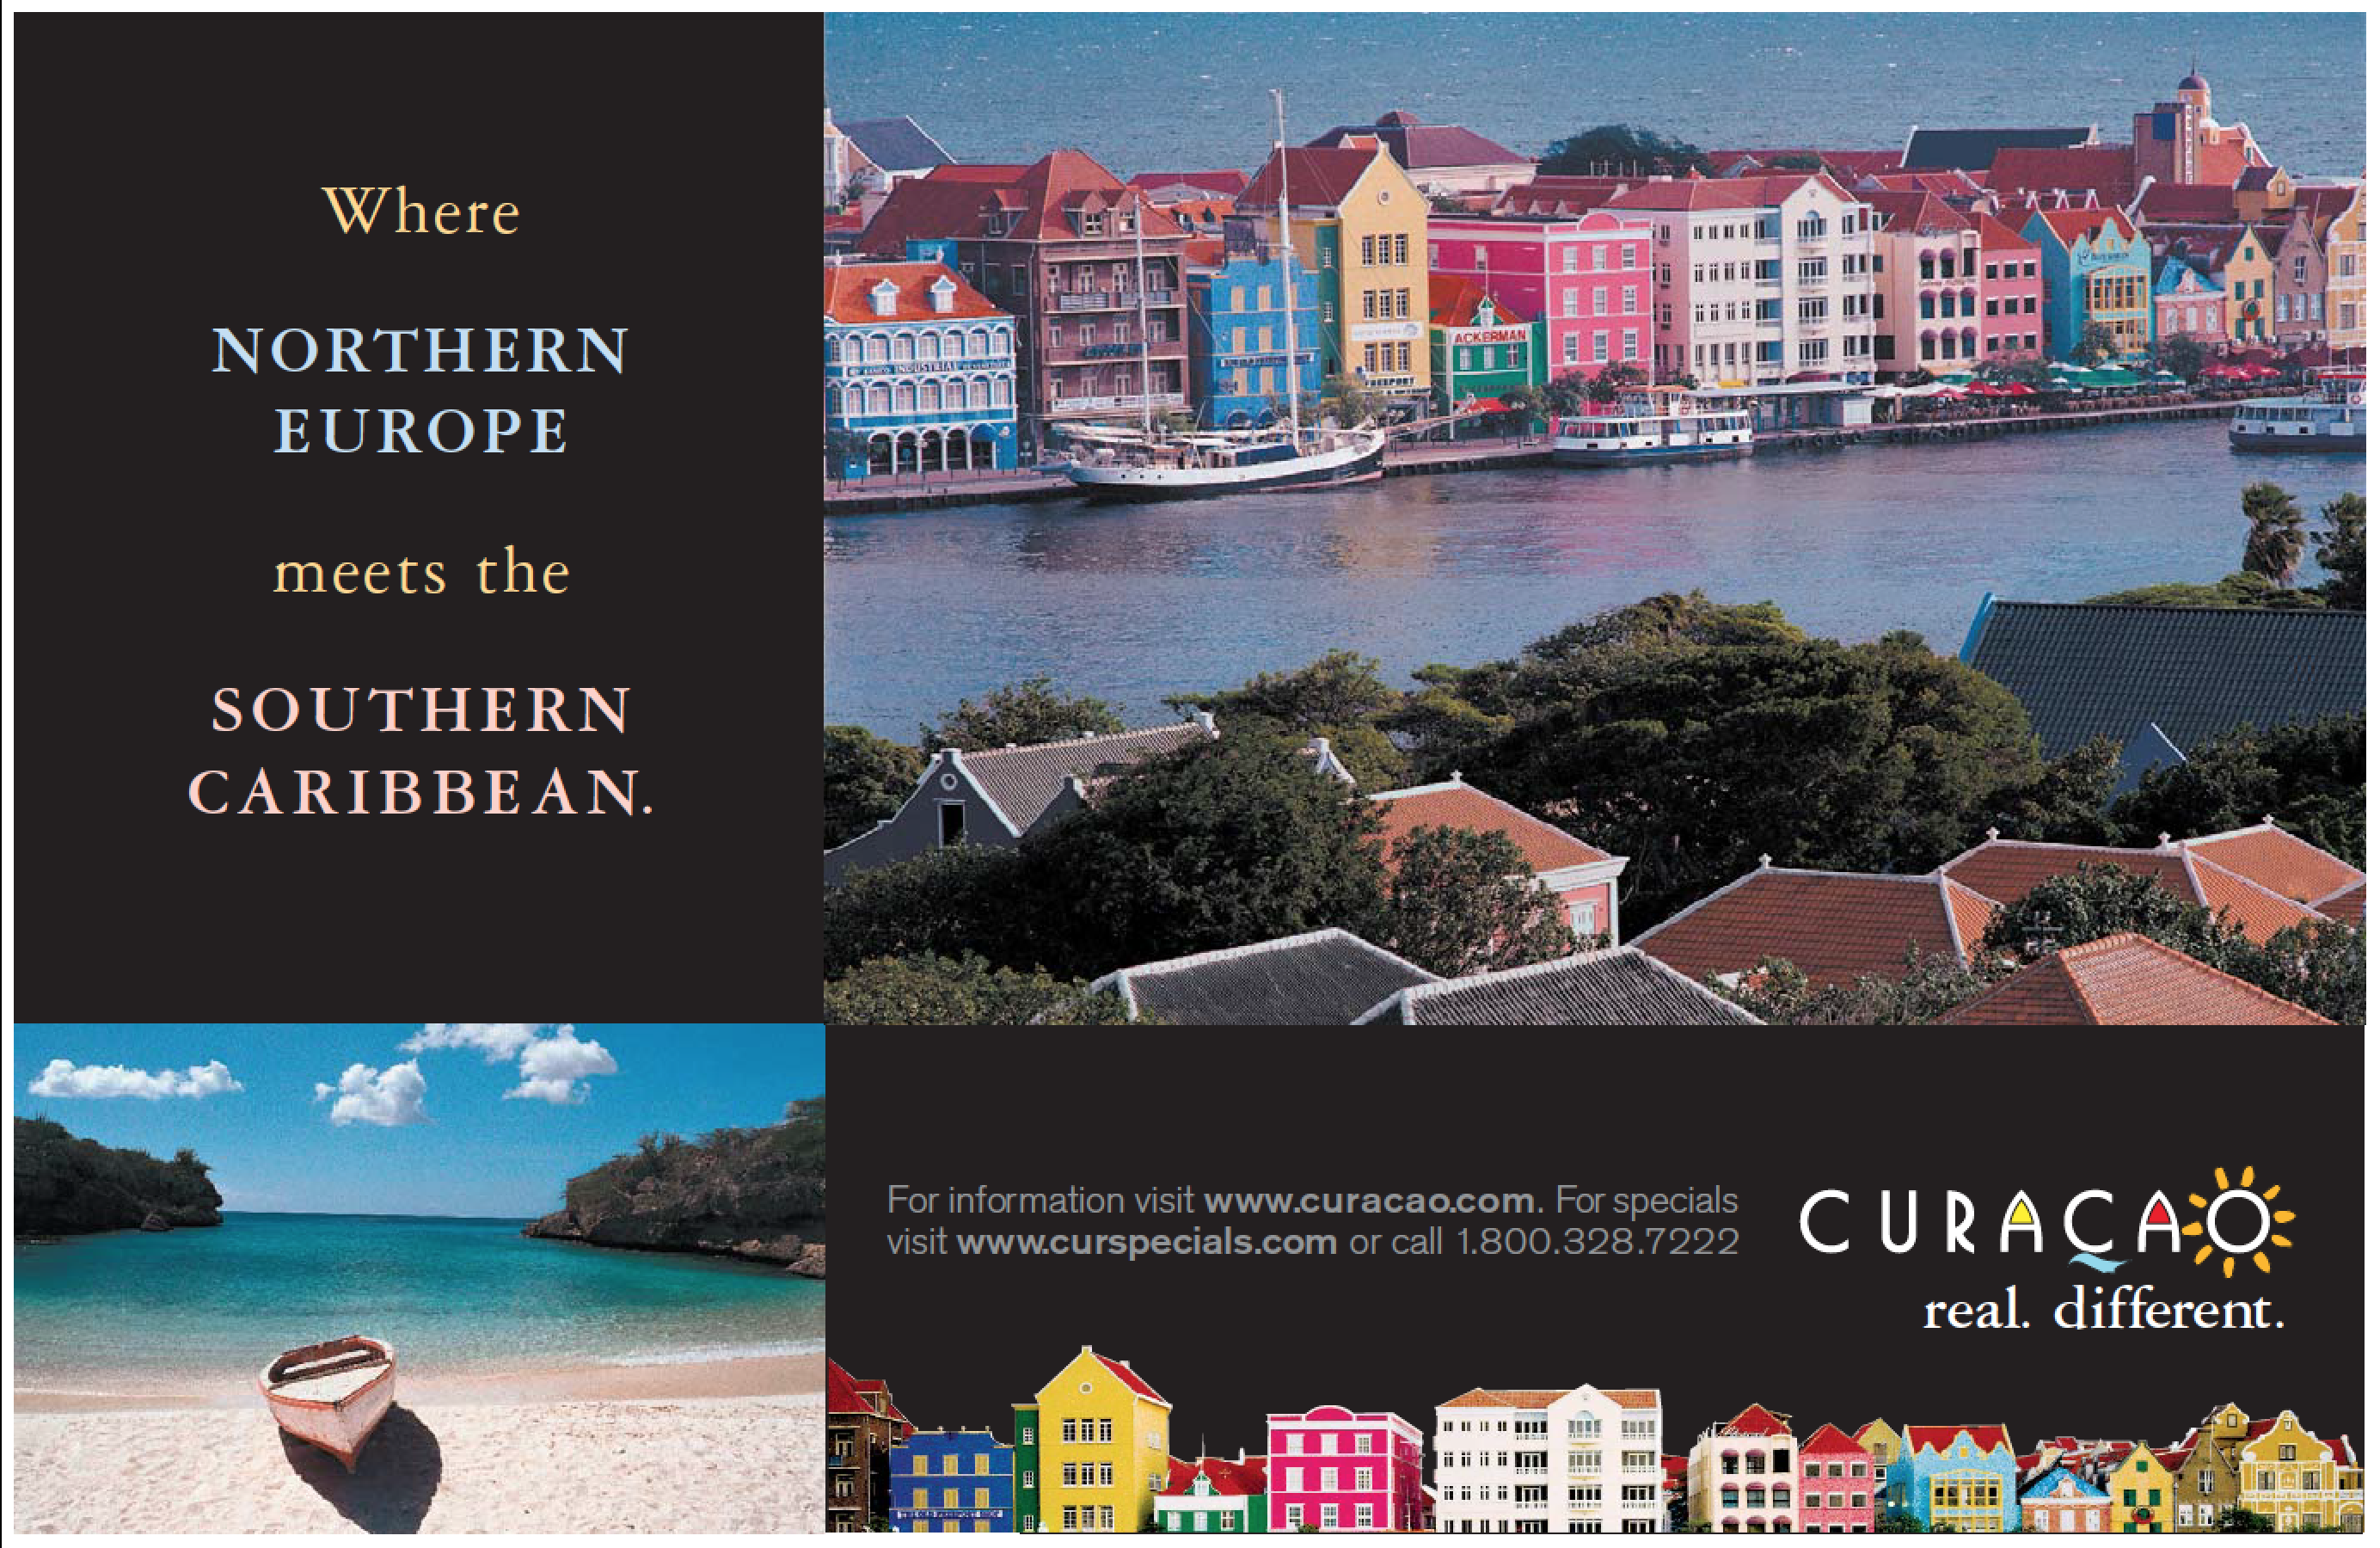 Curacao_NorthernEurope